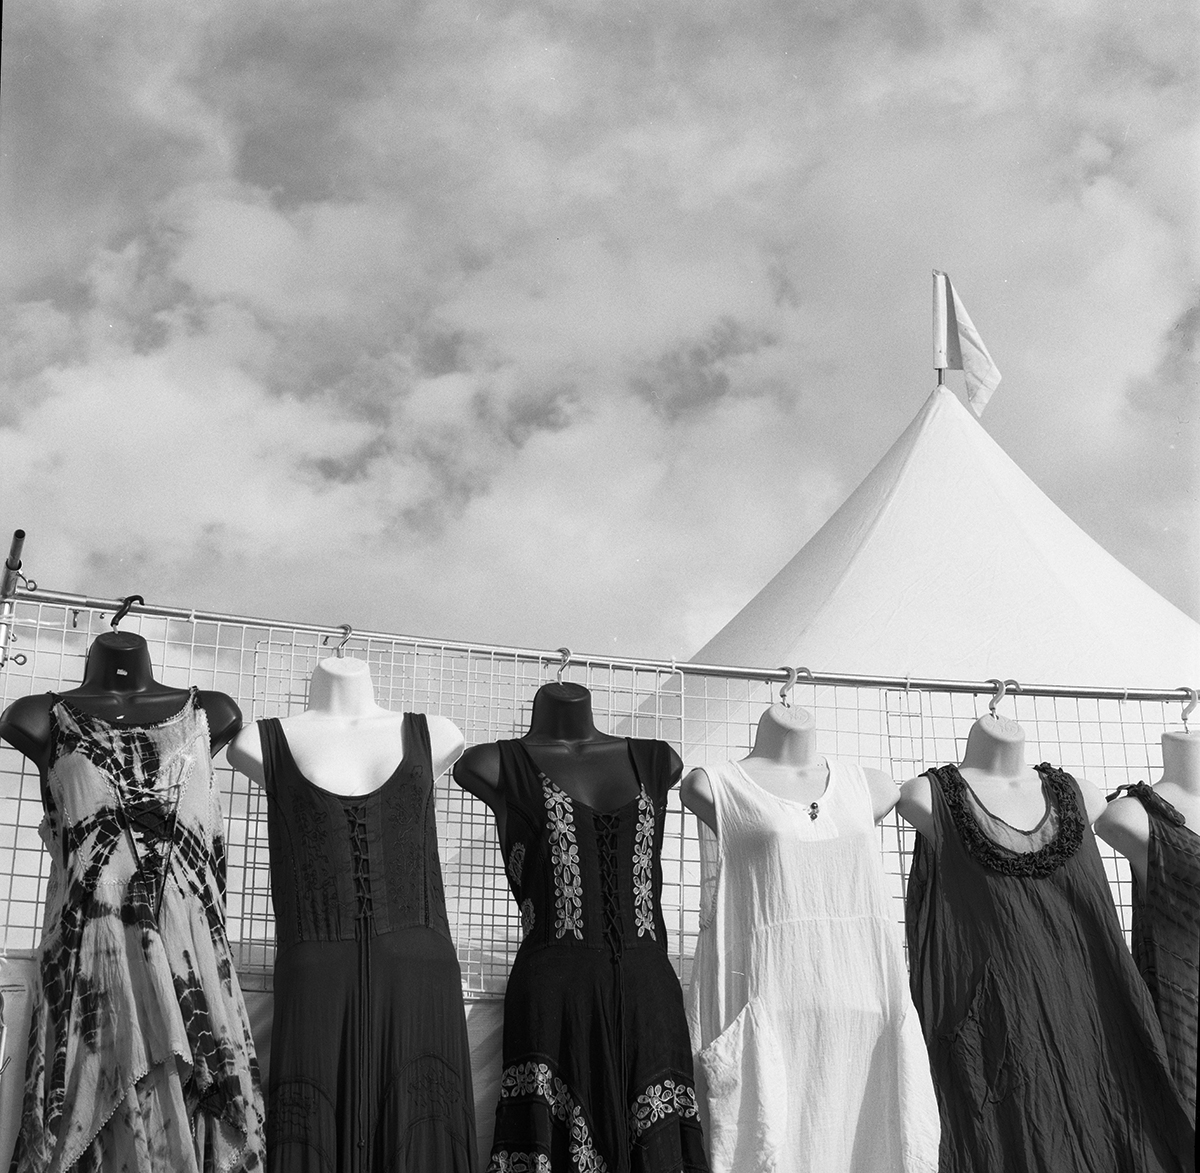 Dresses and tent, Tucson Gem show